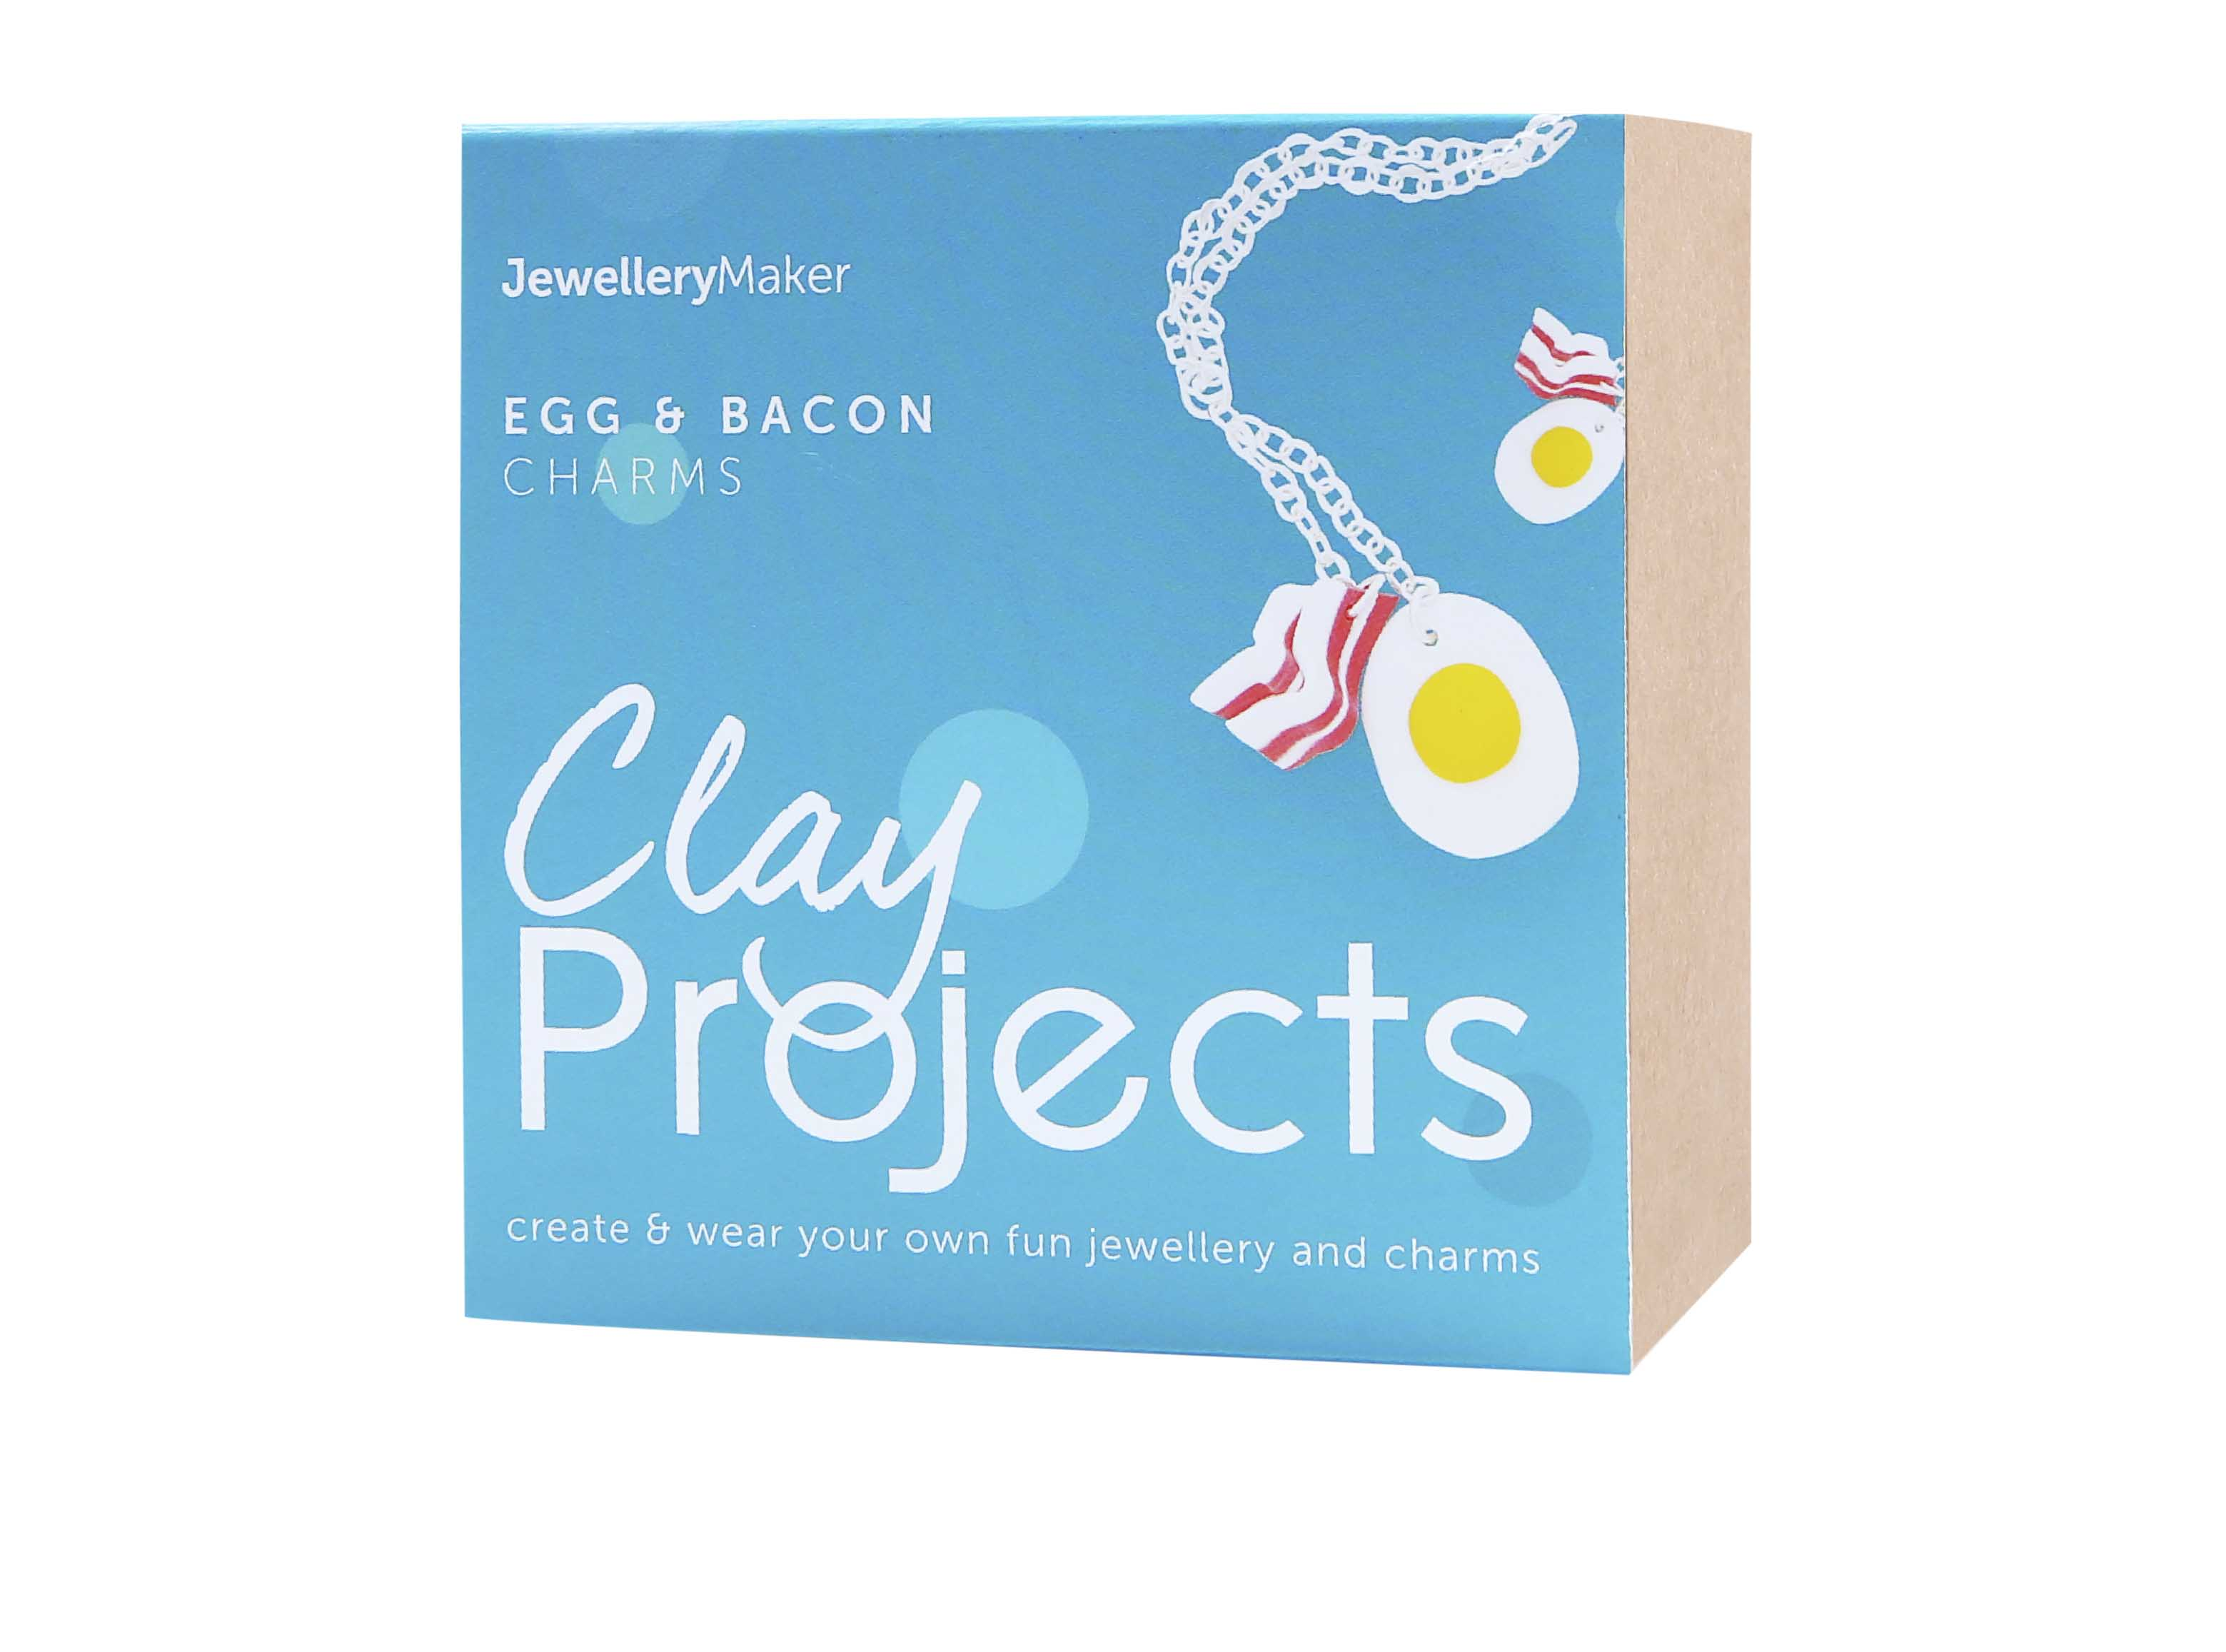 Eggs and Bacon jewellery